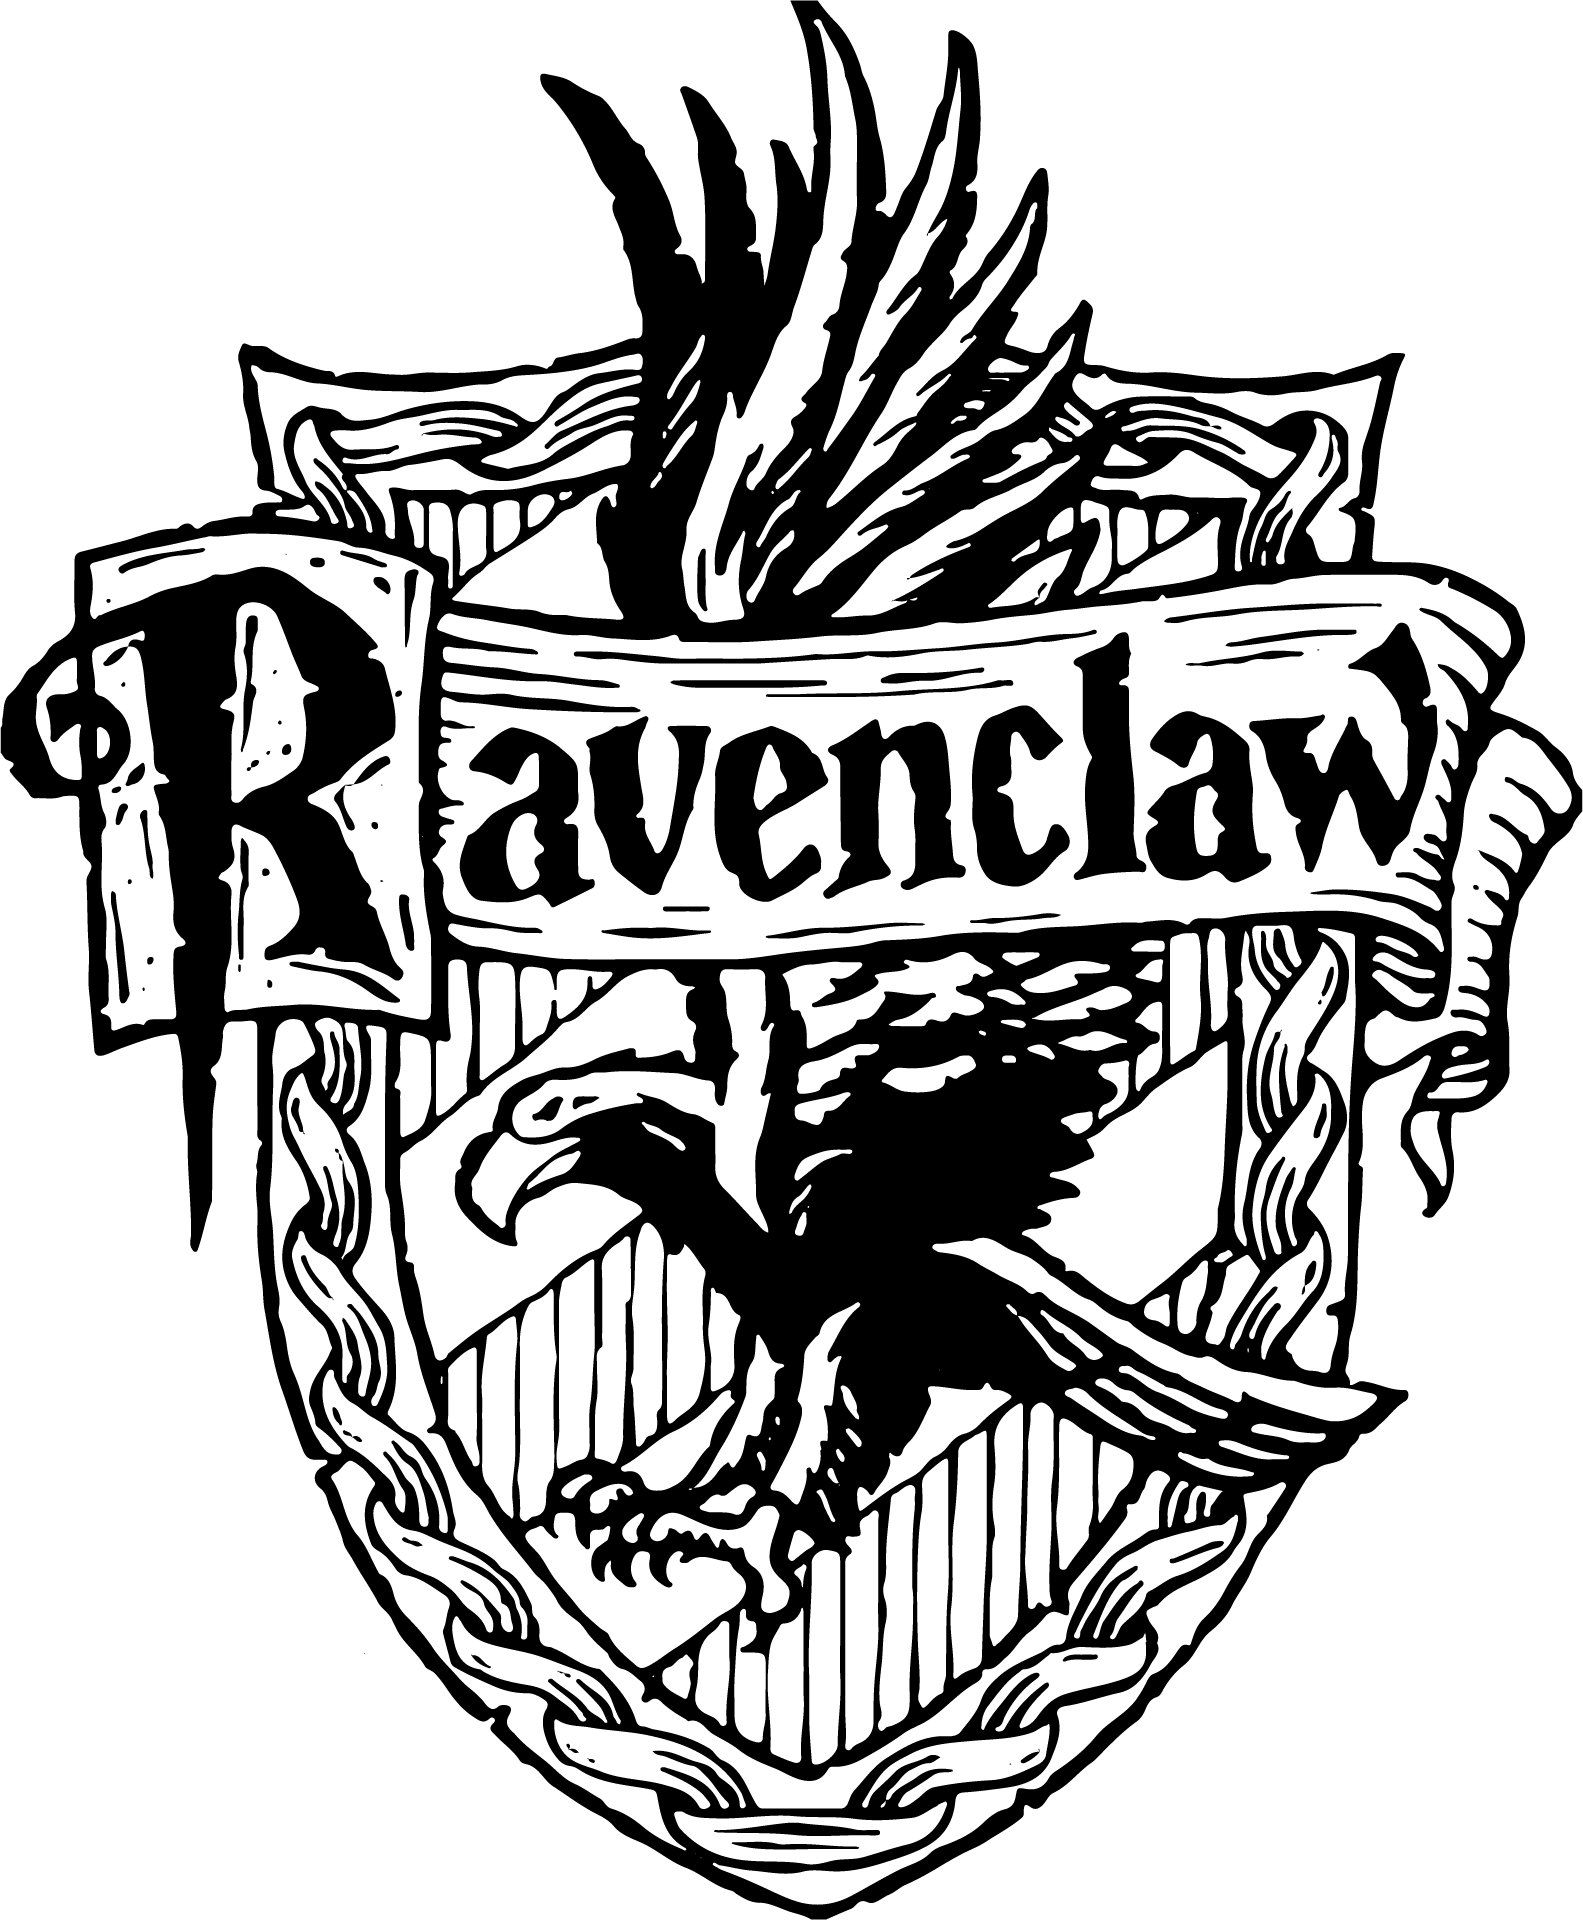 ravenclaw harry potter svg badge for cricut digital